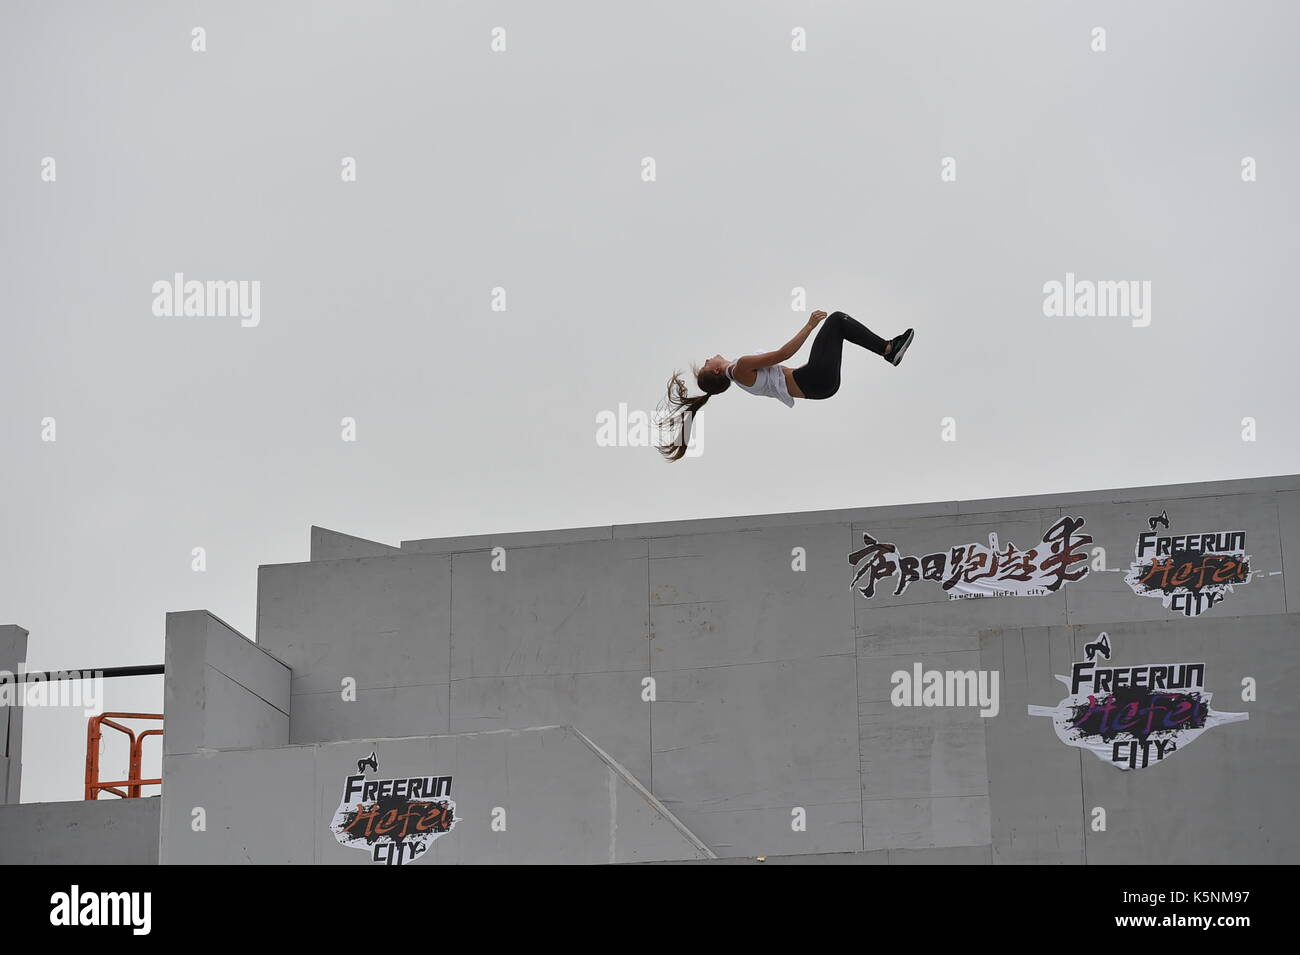 Hefei, China's Anhui Province. 9th Sep, 2017. A parkour fan from Austria takes part in a skill competition during the 2017 Hefei International Parkour Open in Hefei, capital of east China's Anhui Province, Sept. 9, 2017. The two-day contest, which kicked off on Sept. 9, attracted a good many parkour fans from the world. Credit: Yang Xiaoyuan/Xinhua/Alamy Live News - Stock Image